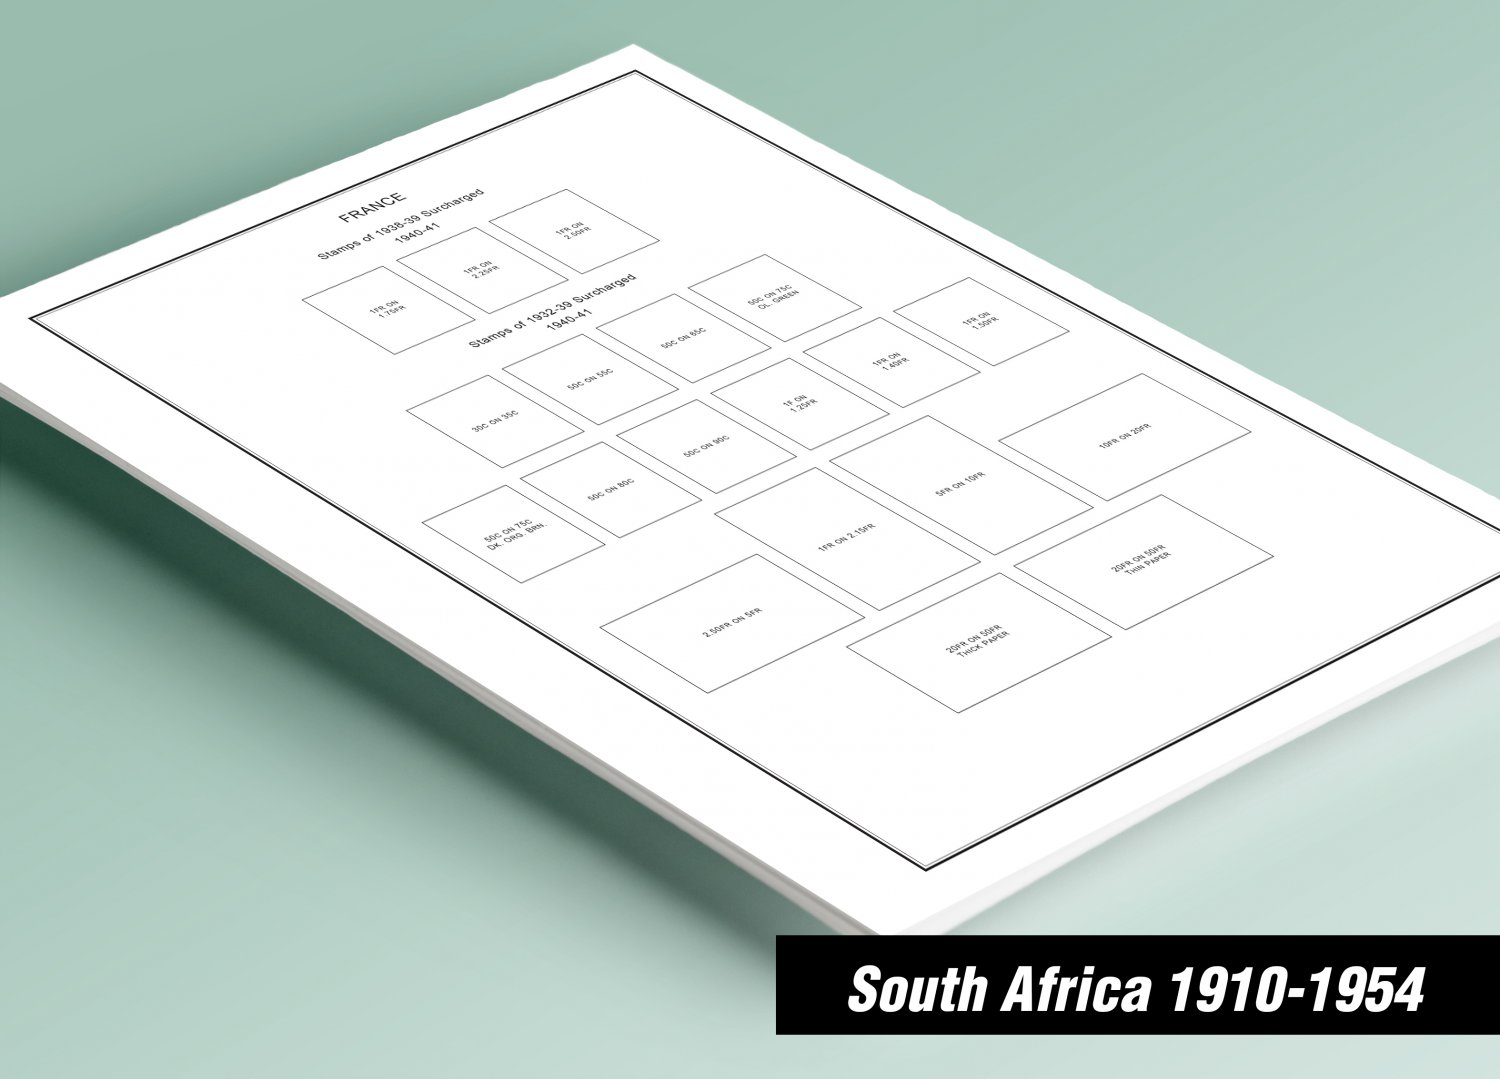 PRINTED SOUTH AFRICA [CLASS.] 1910-1954 STAMP ALBUM PAGES (23 pages)